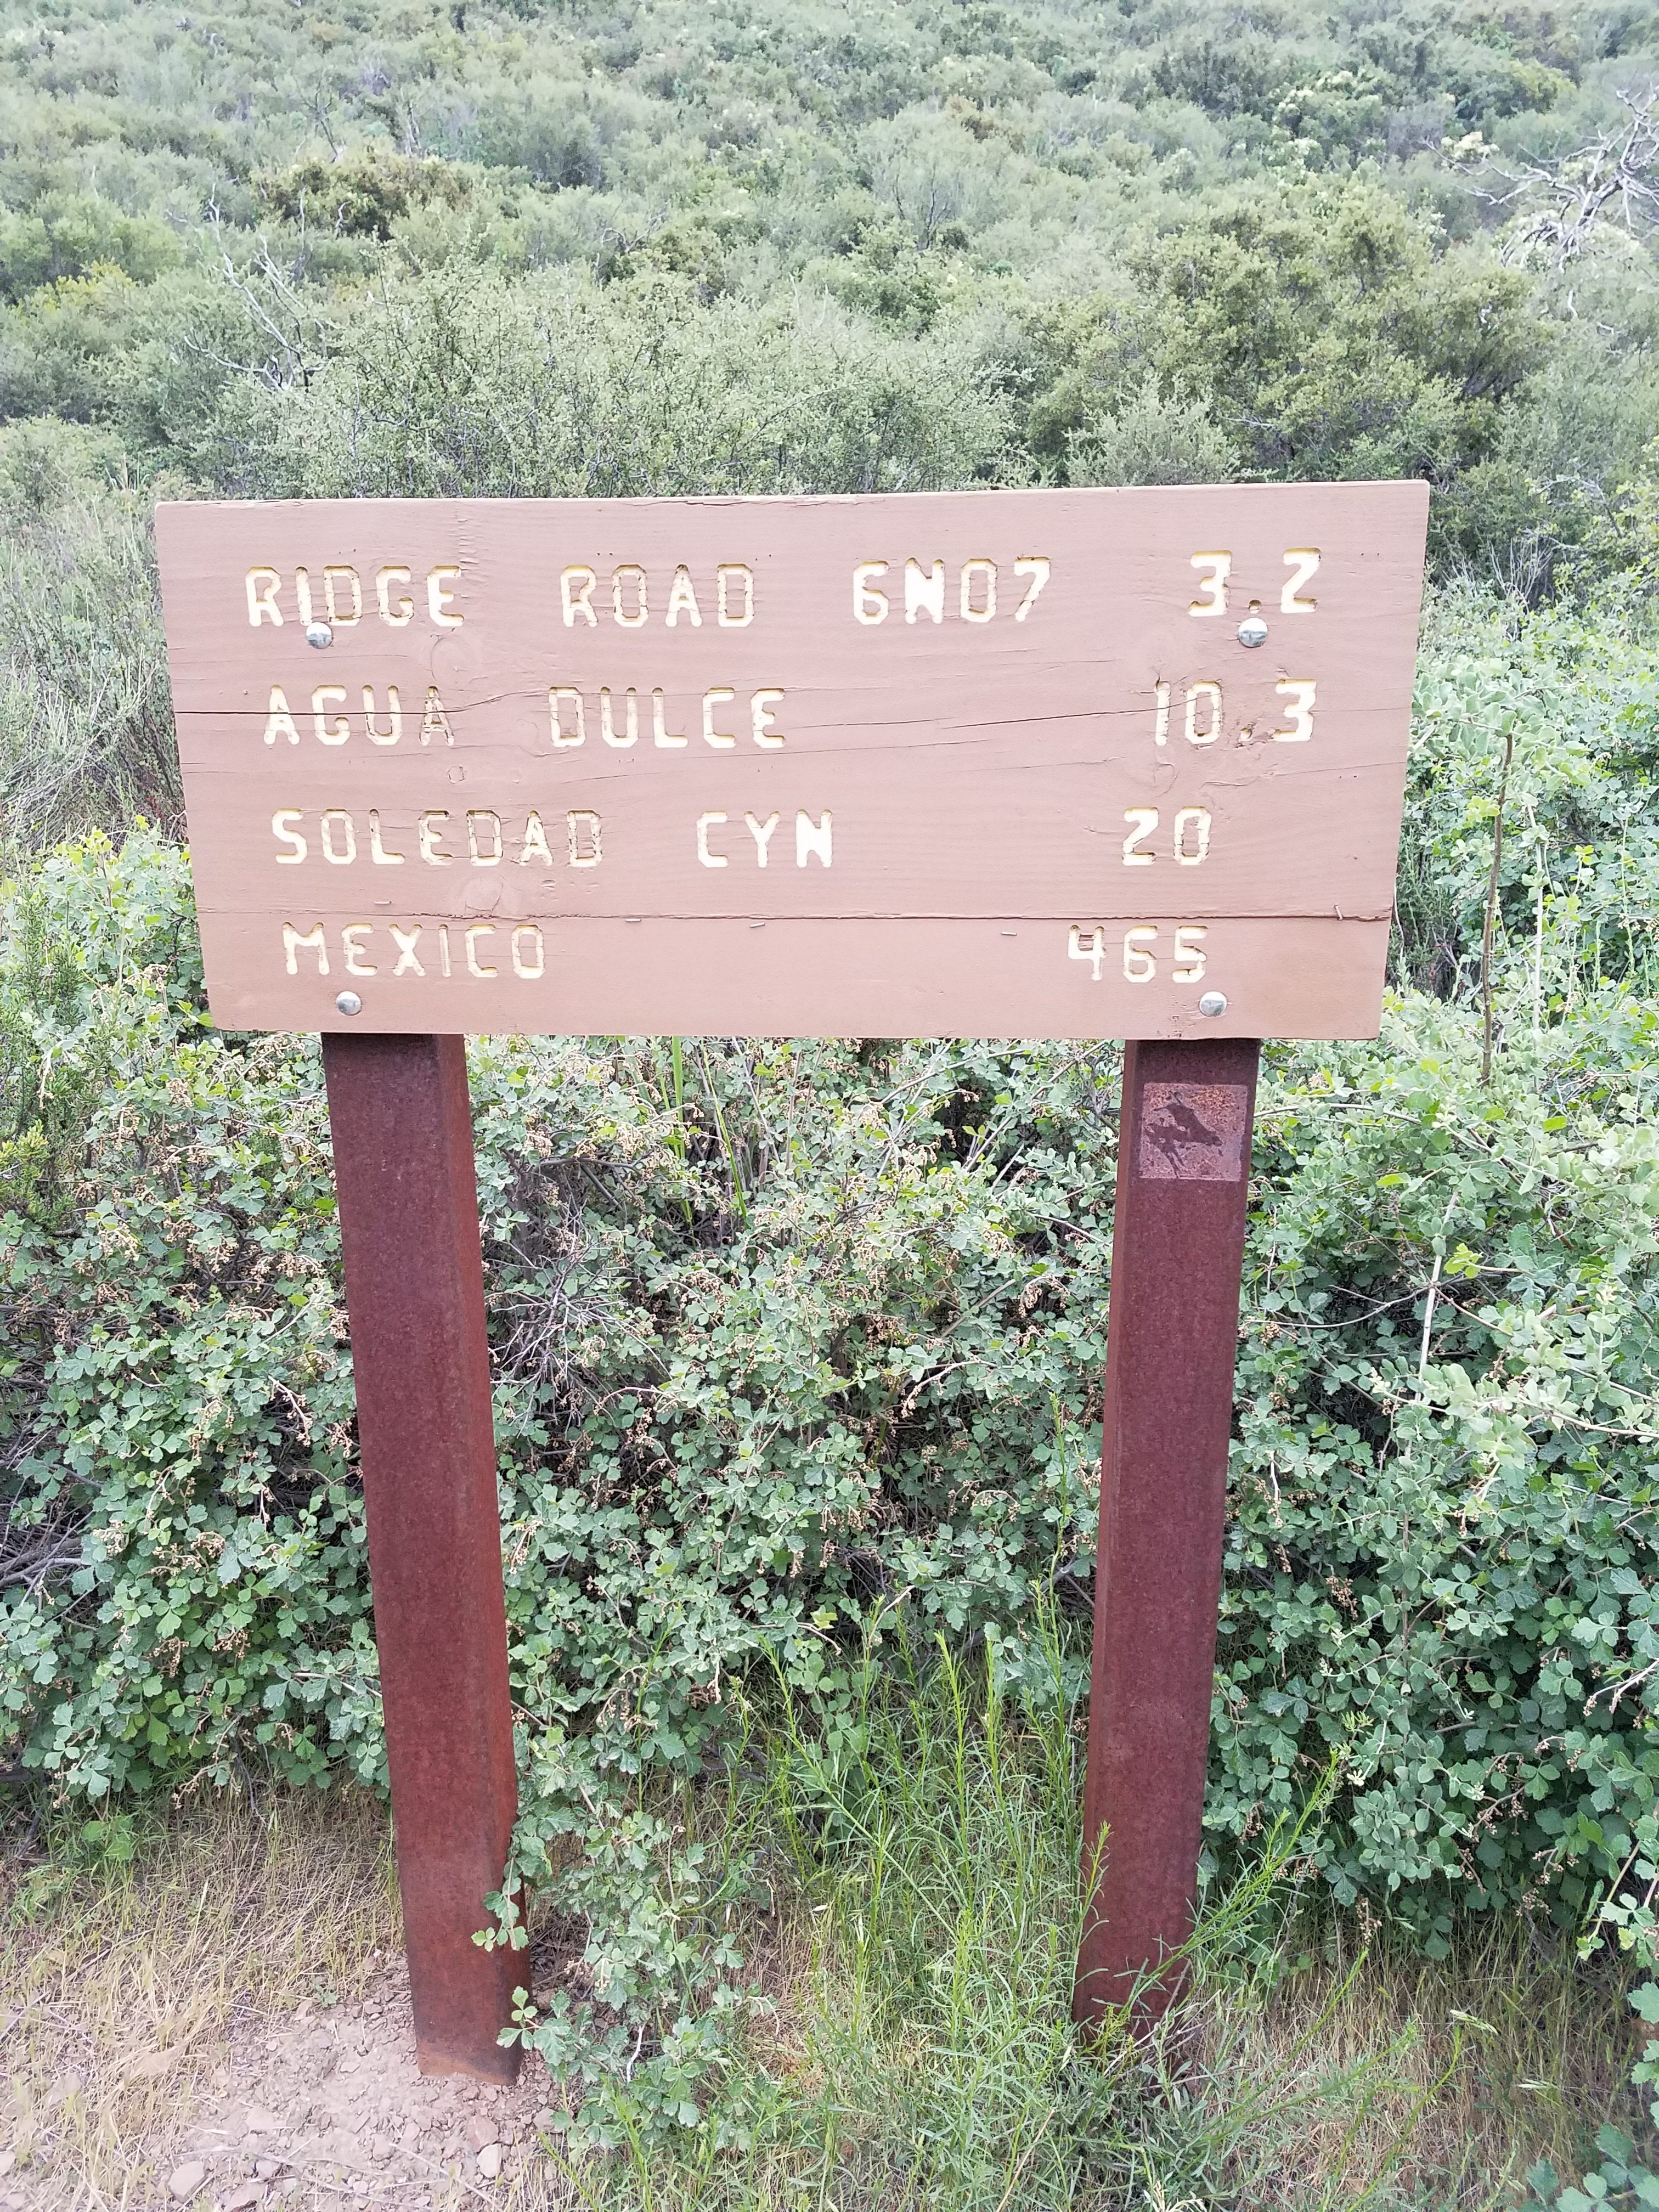 PCT Thru-Hike by the Numbers